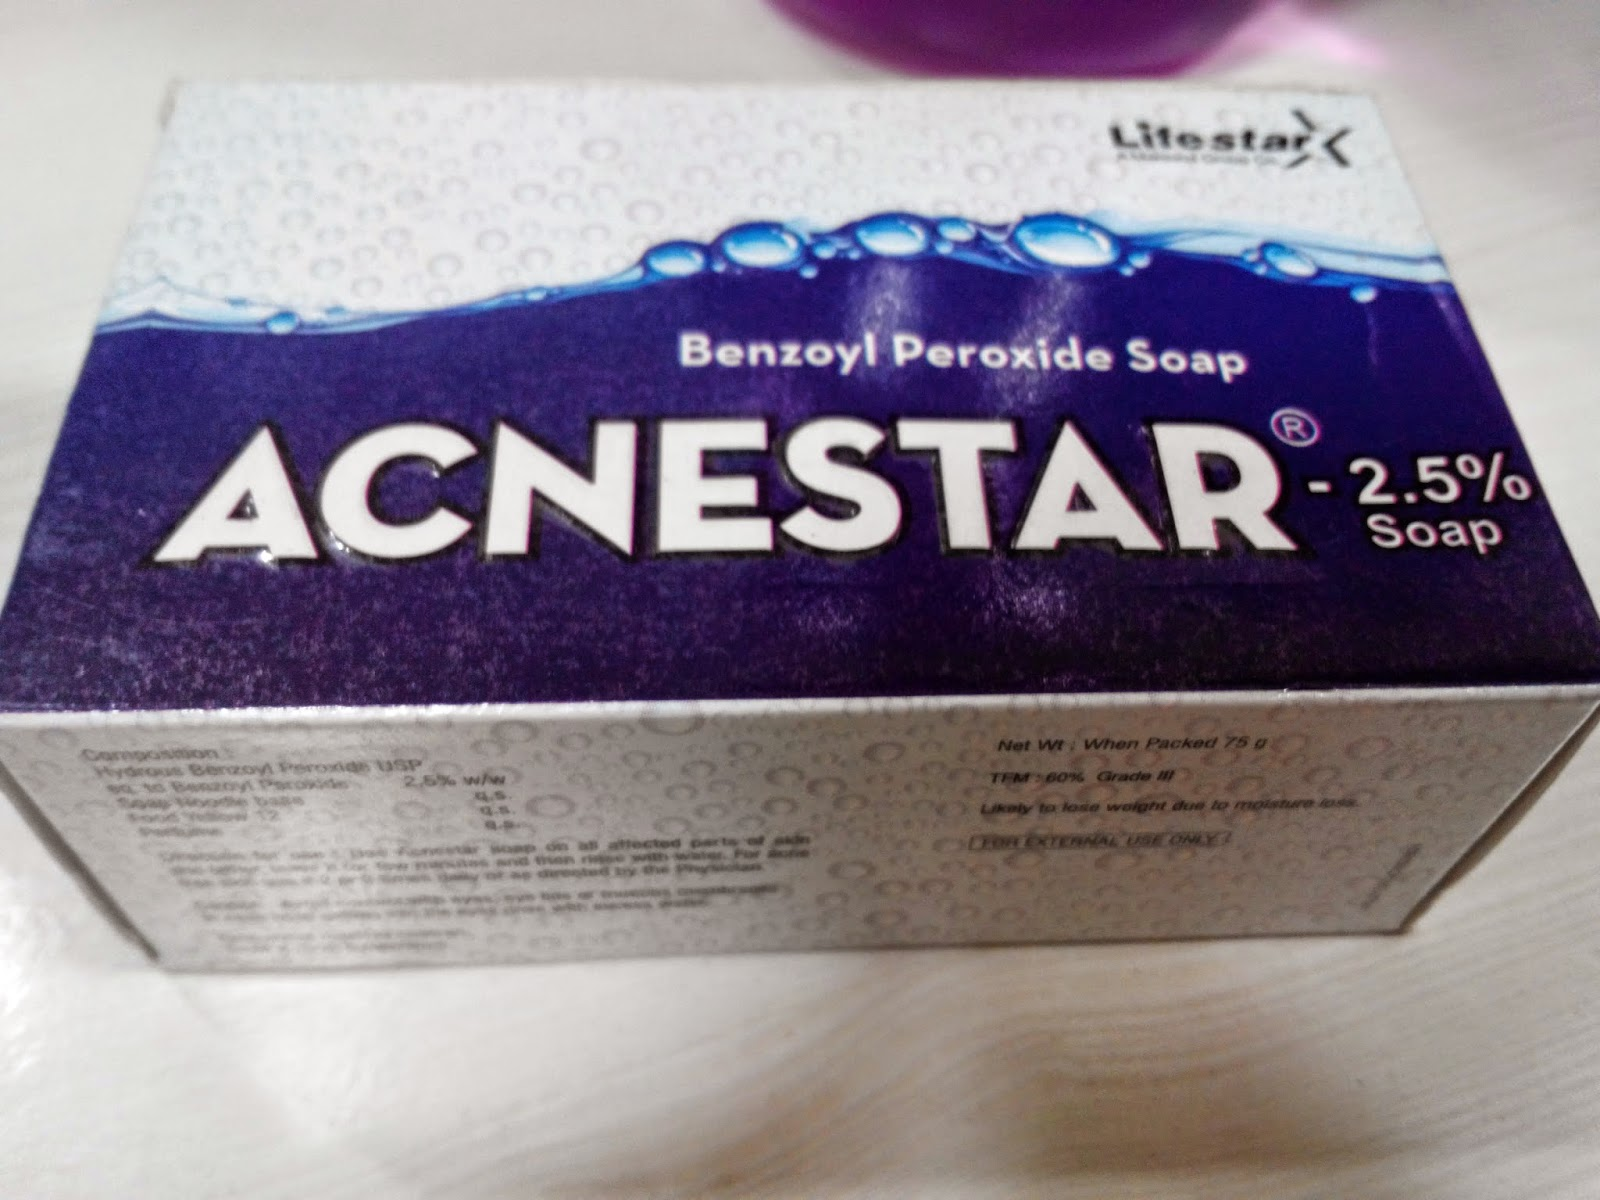 Benzyl peroxide soap, Acnestar, Life star, pimples